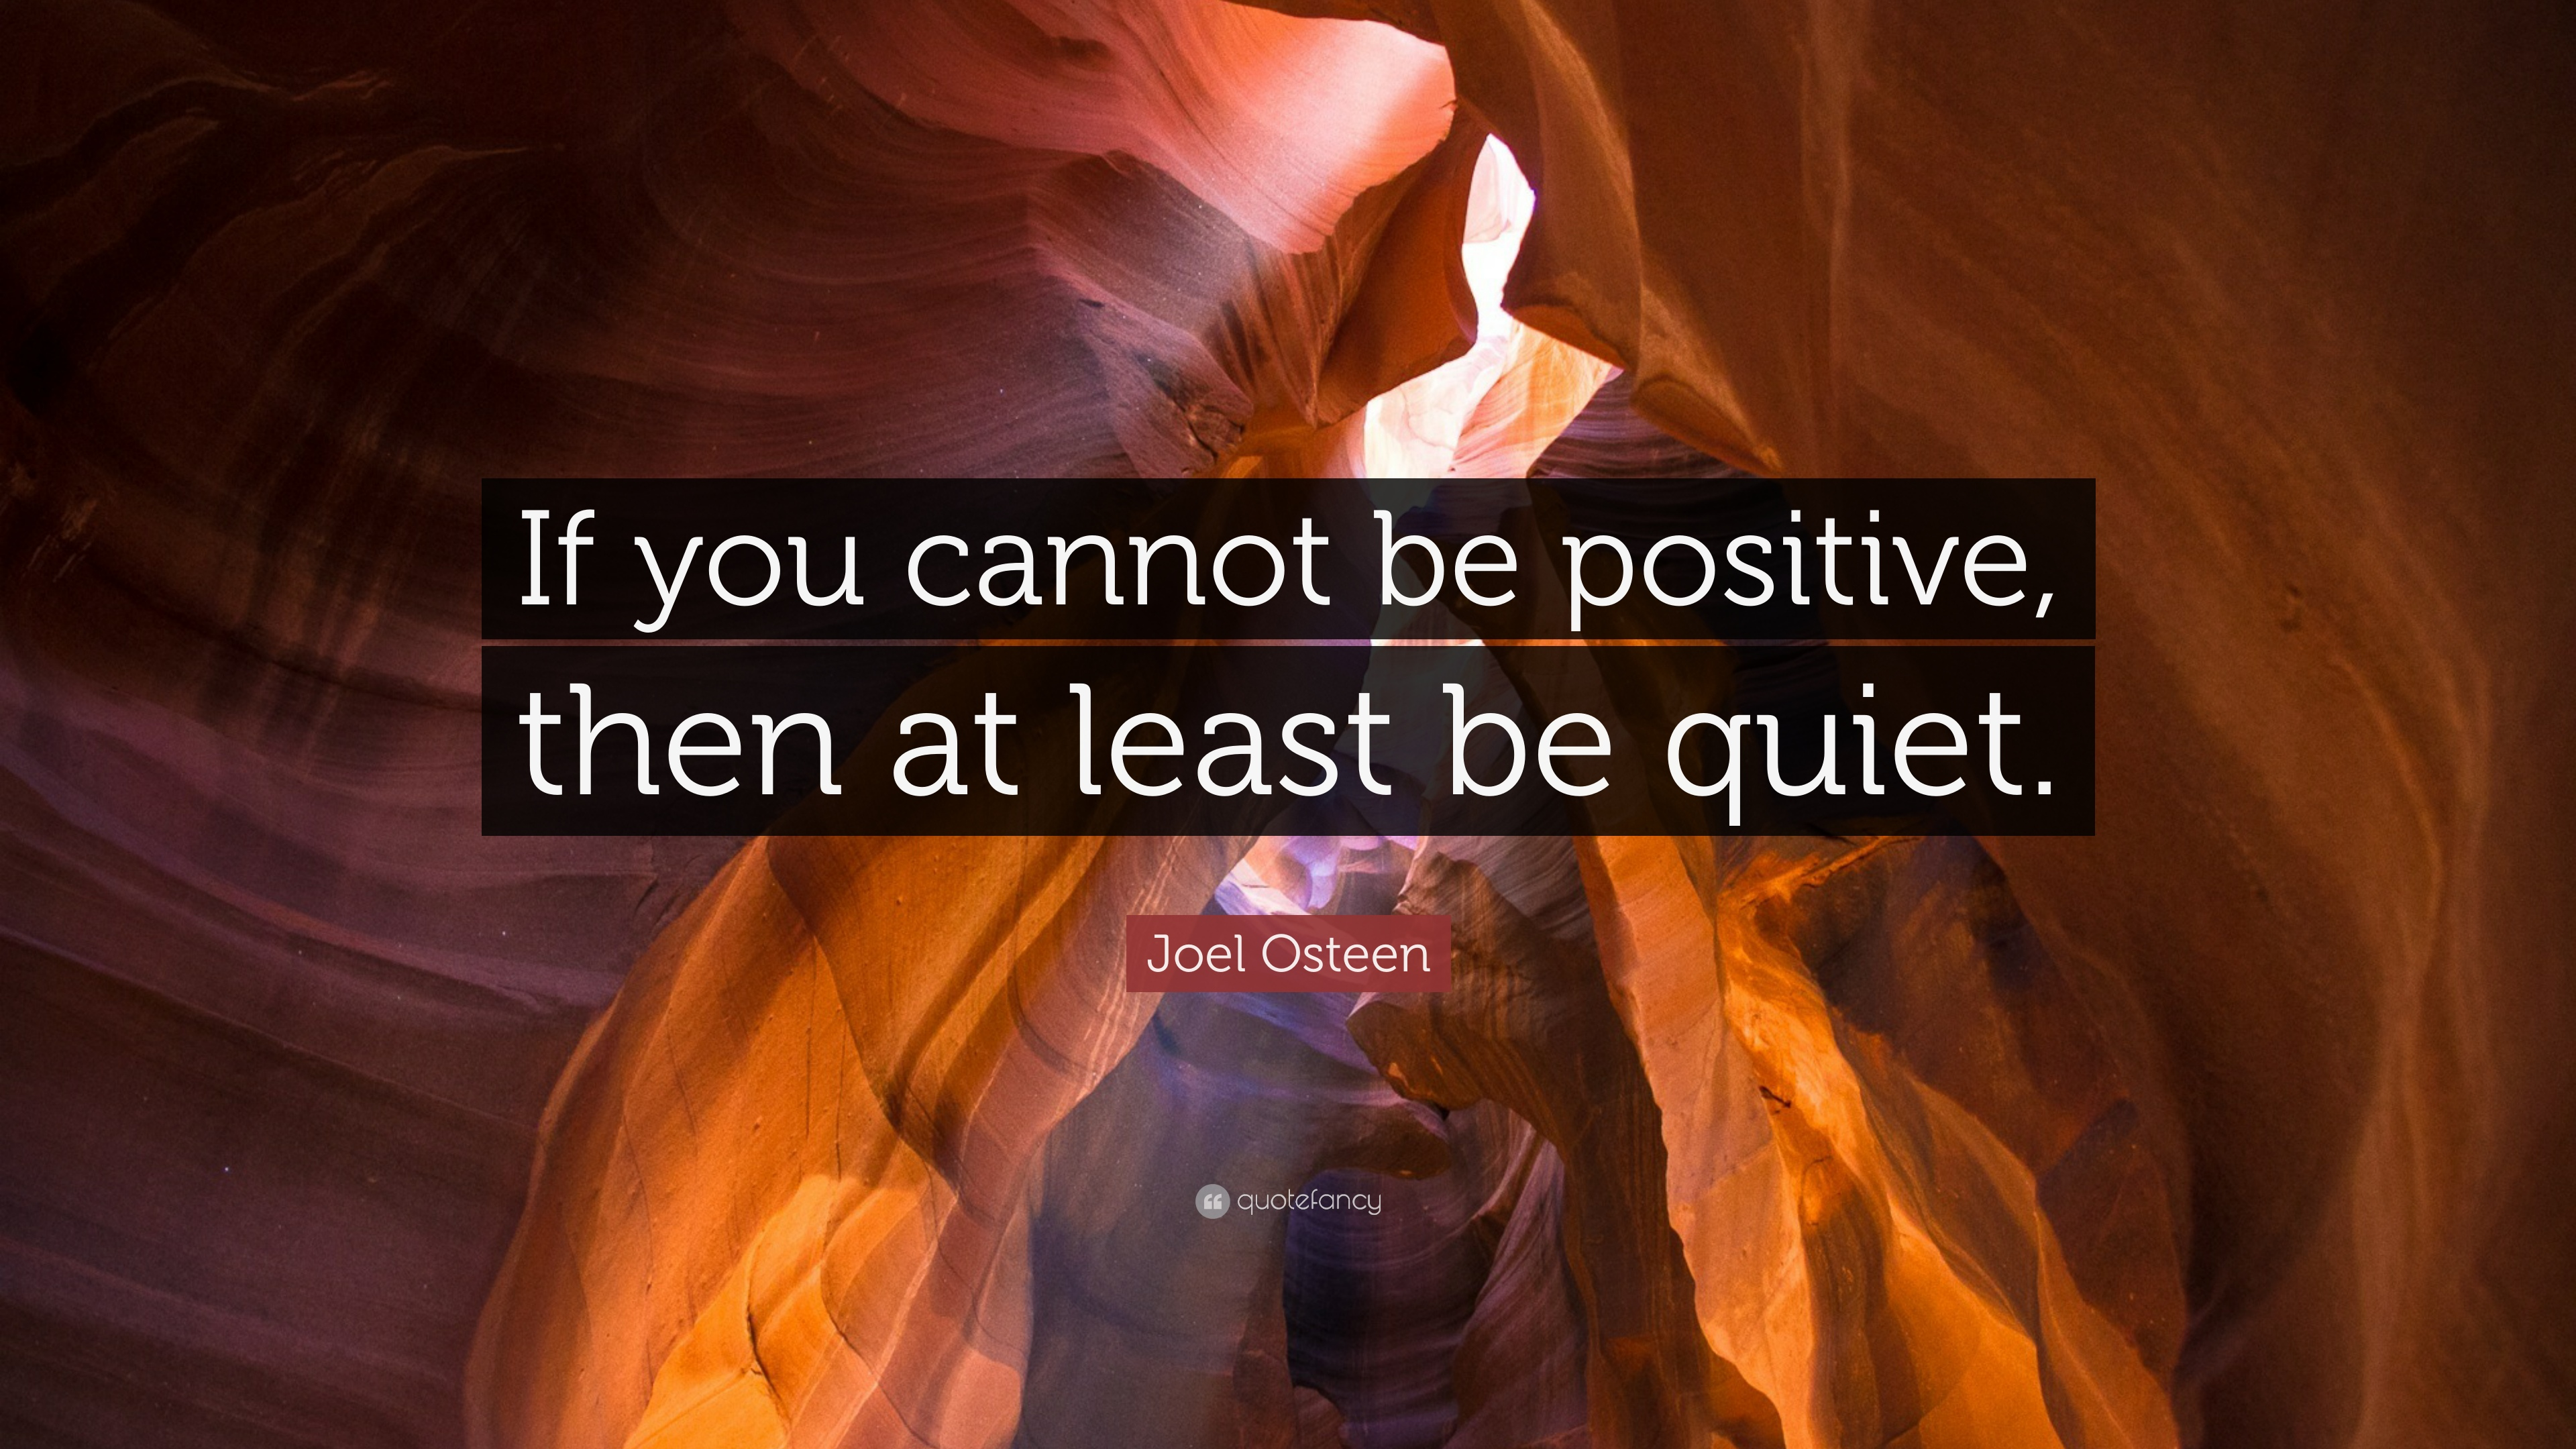 Joel Osteen Quote: U201cIf You Cannot Be Positive, Then At Least Be Quiet